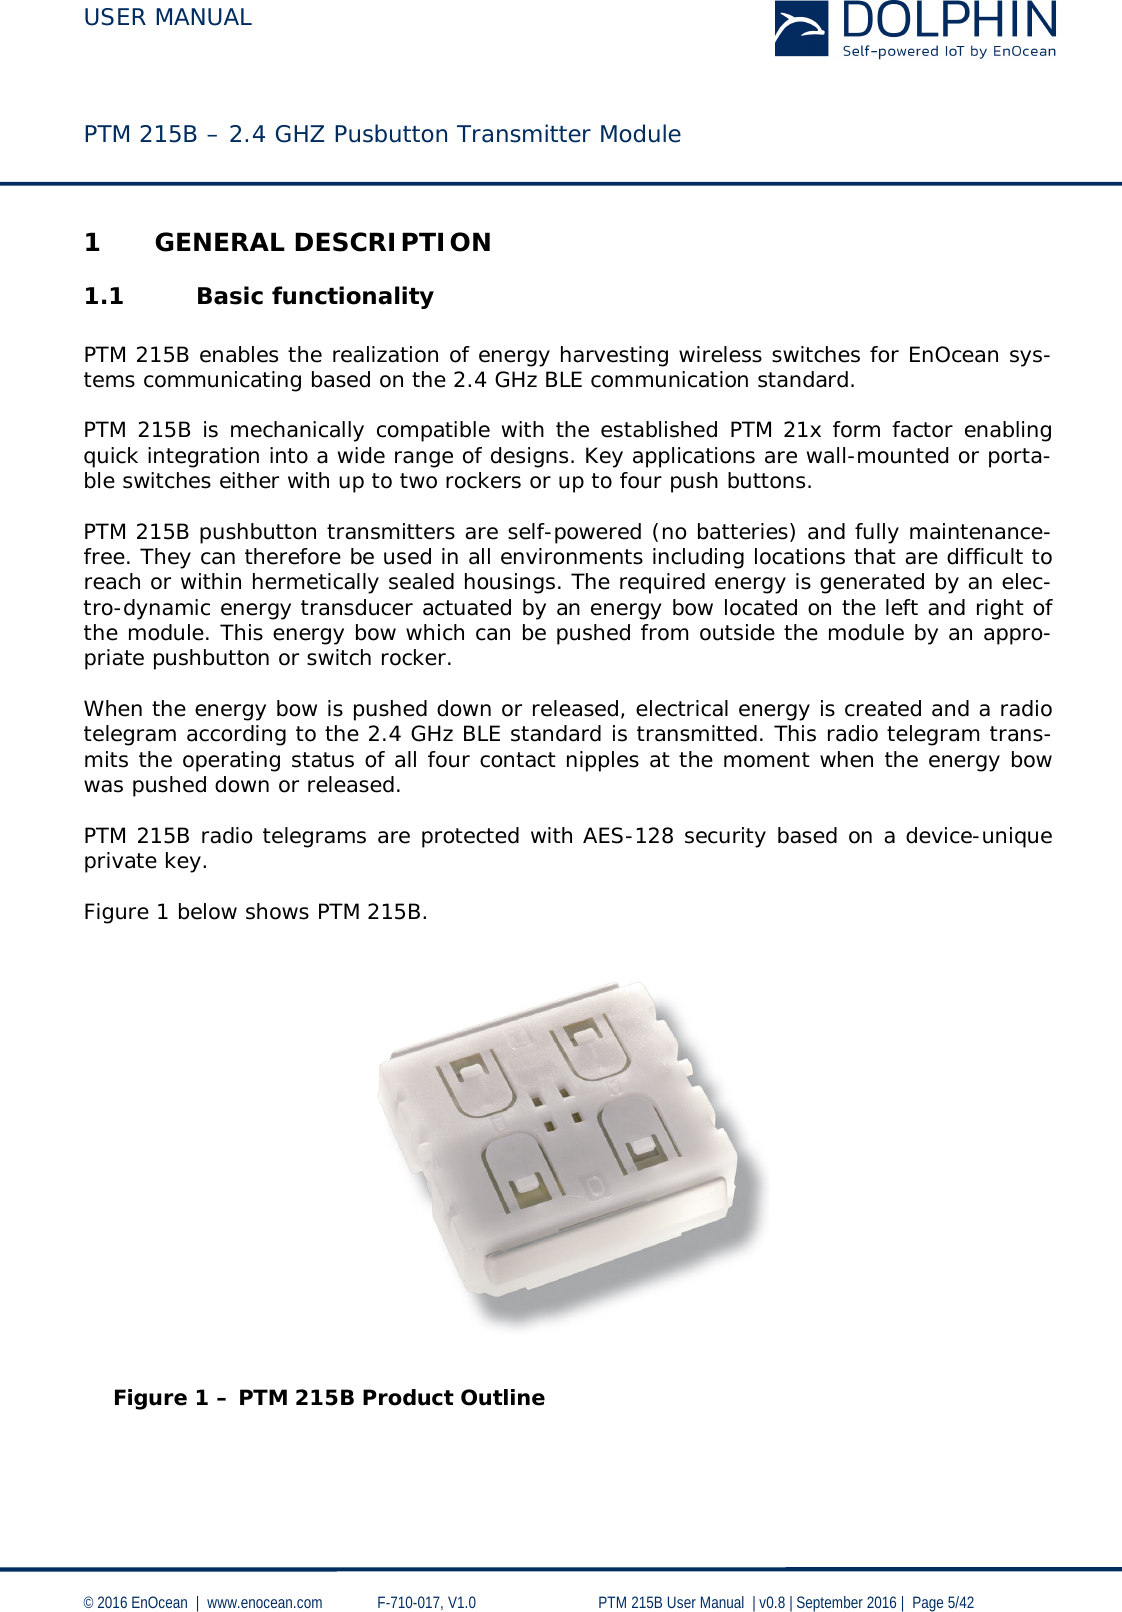 USER MANUAL    PTM 215B – 2.4 GHZ Pusbutton Transmitter Module  © 2016 EnOcean     www.enocean.com   F-710-017, V1.0        PTM 215B User Manual    v0.8   September 2016    Page 5/42  1 GENERAL DESCRIPTION 1.1 Basic functionality  PTM 215B enables the realization of energy harvesting wireless switches for EnOcean sys-tems communicating based on the 2.4 GHz BLE communication standard.   PTM 215B is mechanically compatible with the established PTM 21x form factor enabling quick integration into a wide range of designs. Key applications are wall-mounted or porta-ble switches either with up to two rockers or up to four push buttons.  PTM 215B pushbutton transmitters are self-powered (no batteries) and fully maintenance-free. They can therefore be used in all environments including locations that are difficult to reach or within hermetically sealed housings. The required energy is generated by an elec-tro-dynamic energy transducer actuated by an energy bow located on the left and right of the module. This energy bow which can be pushed from outside the module by an appro-priate pushbutton or switch rocker.   When the energy bow is pushed down or released, electrical energy is created and a radio telegram according to the 2.4 GHz BLE standard is transmitted. This radio telegram trans-mits the operating status of all four contact nipples at the moment when the energy bow was pushed down or released.   PTM 215B radio telegrams are protected with AES-128 security based on a device-unique private key.  Figure 1 below shows PTM 215B.      Figure 1 – PTM 215B Product Outline